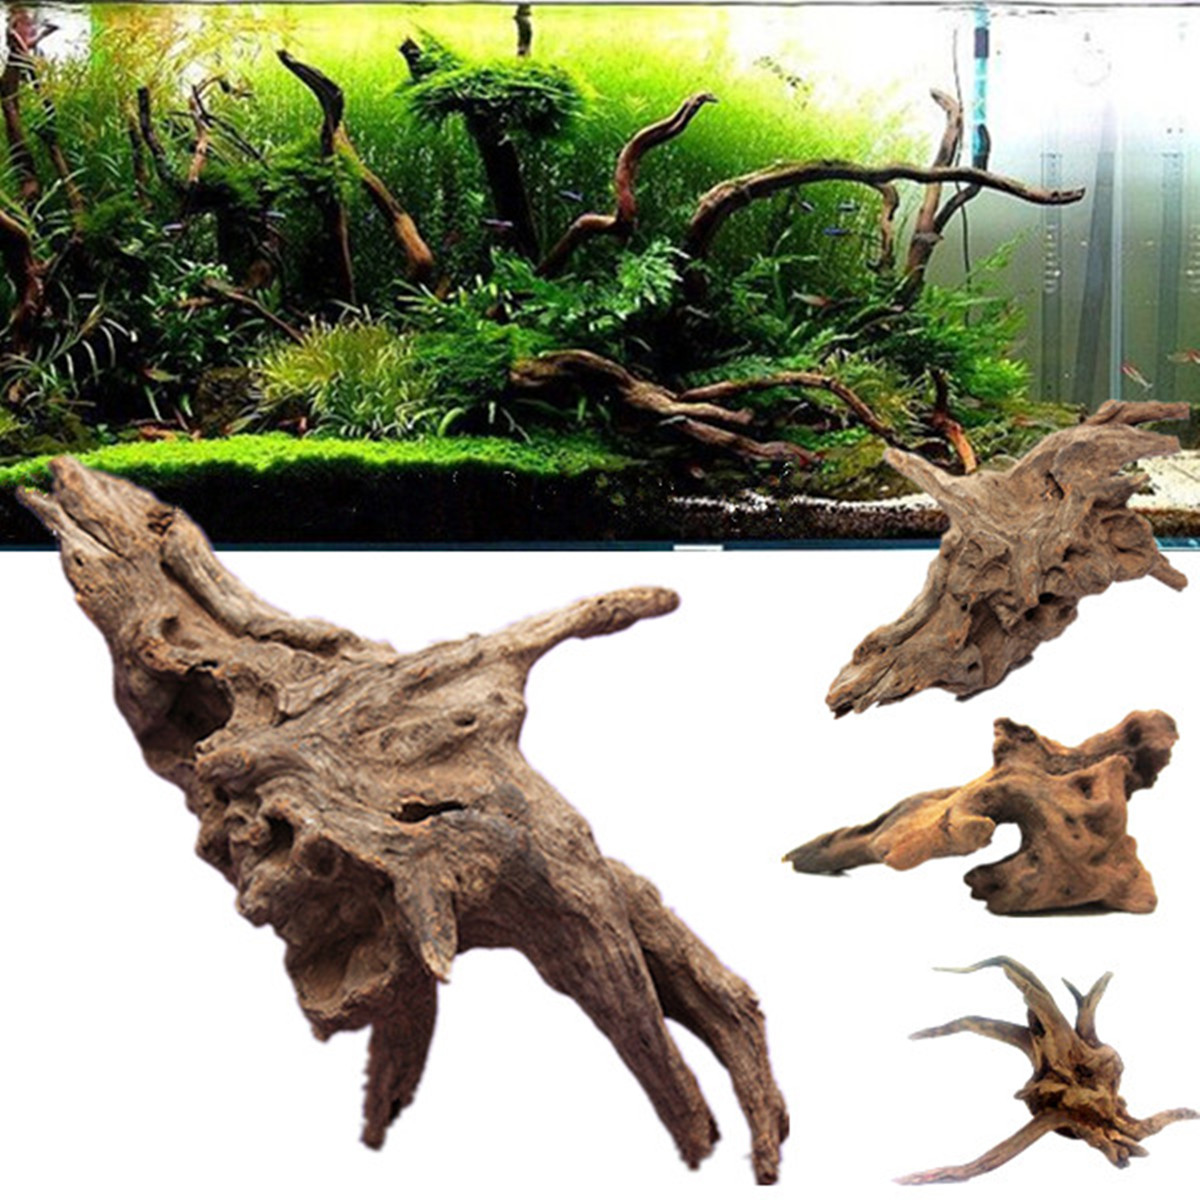 cuckoo root stump tree trunk driftwood for aquarium